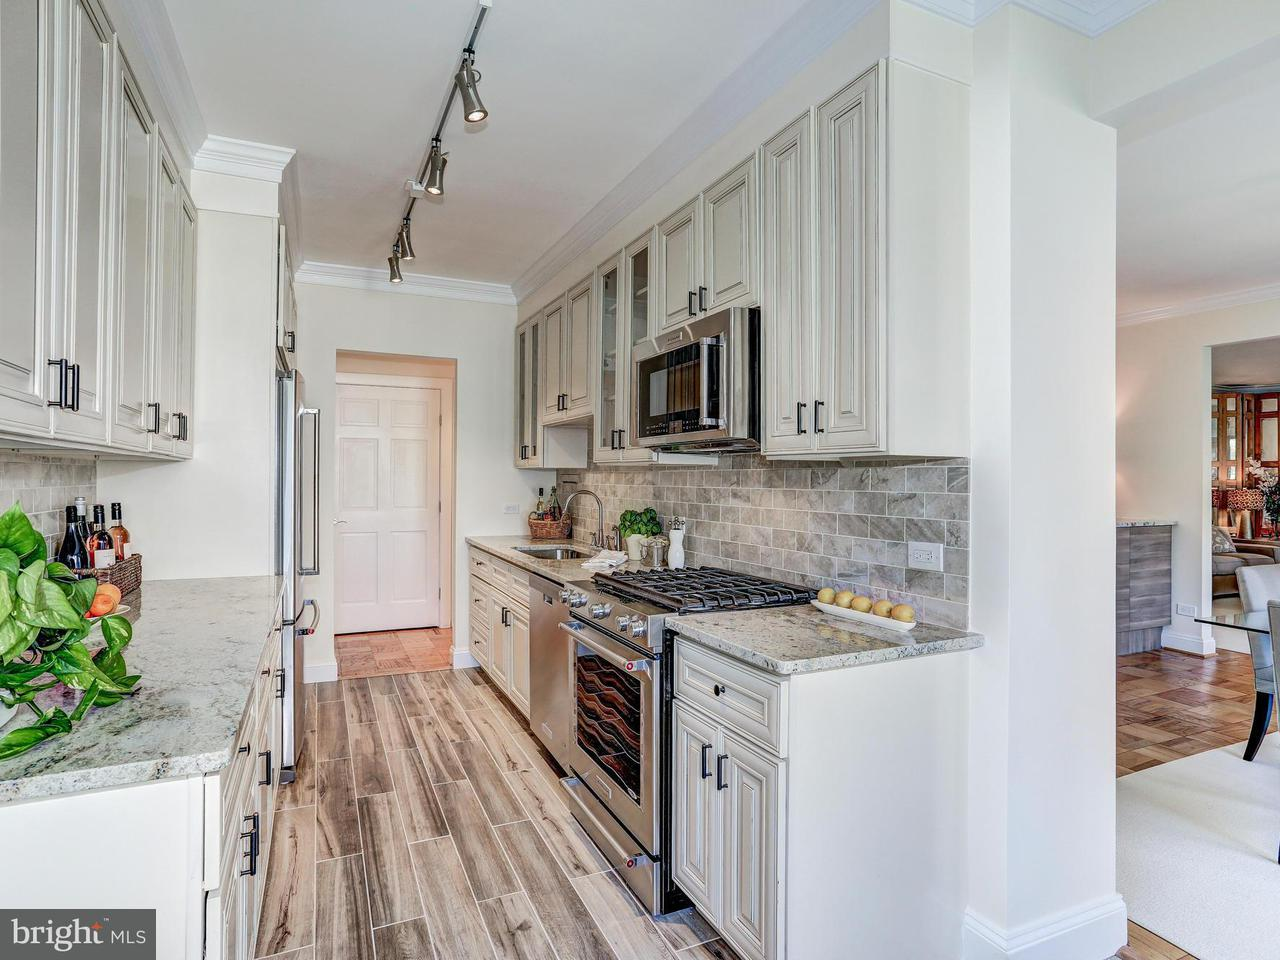 Additional photo for property listing at 2801 New Mexico Ave Nw #715 2801 New Mexico Ave Nw #715 华盛顿市, 哥伦比亚特区 20007 美国